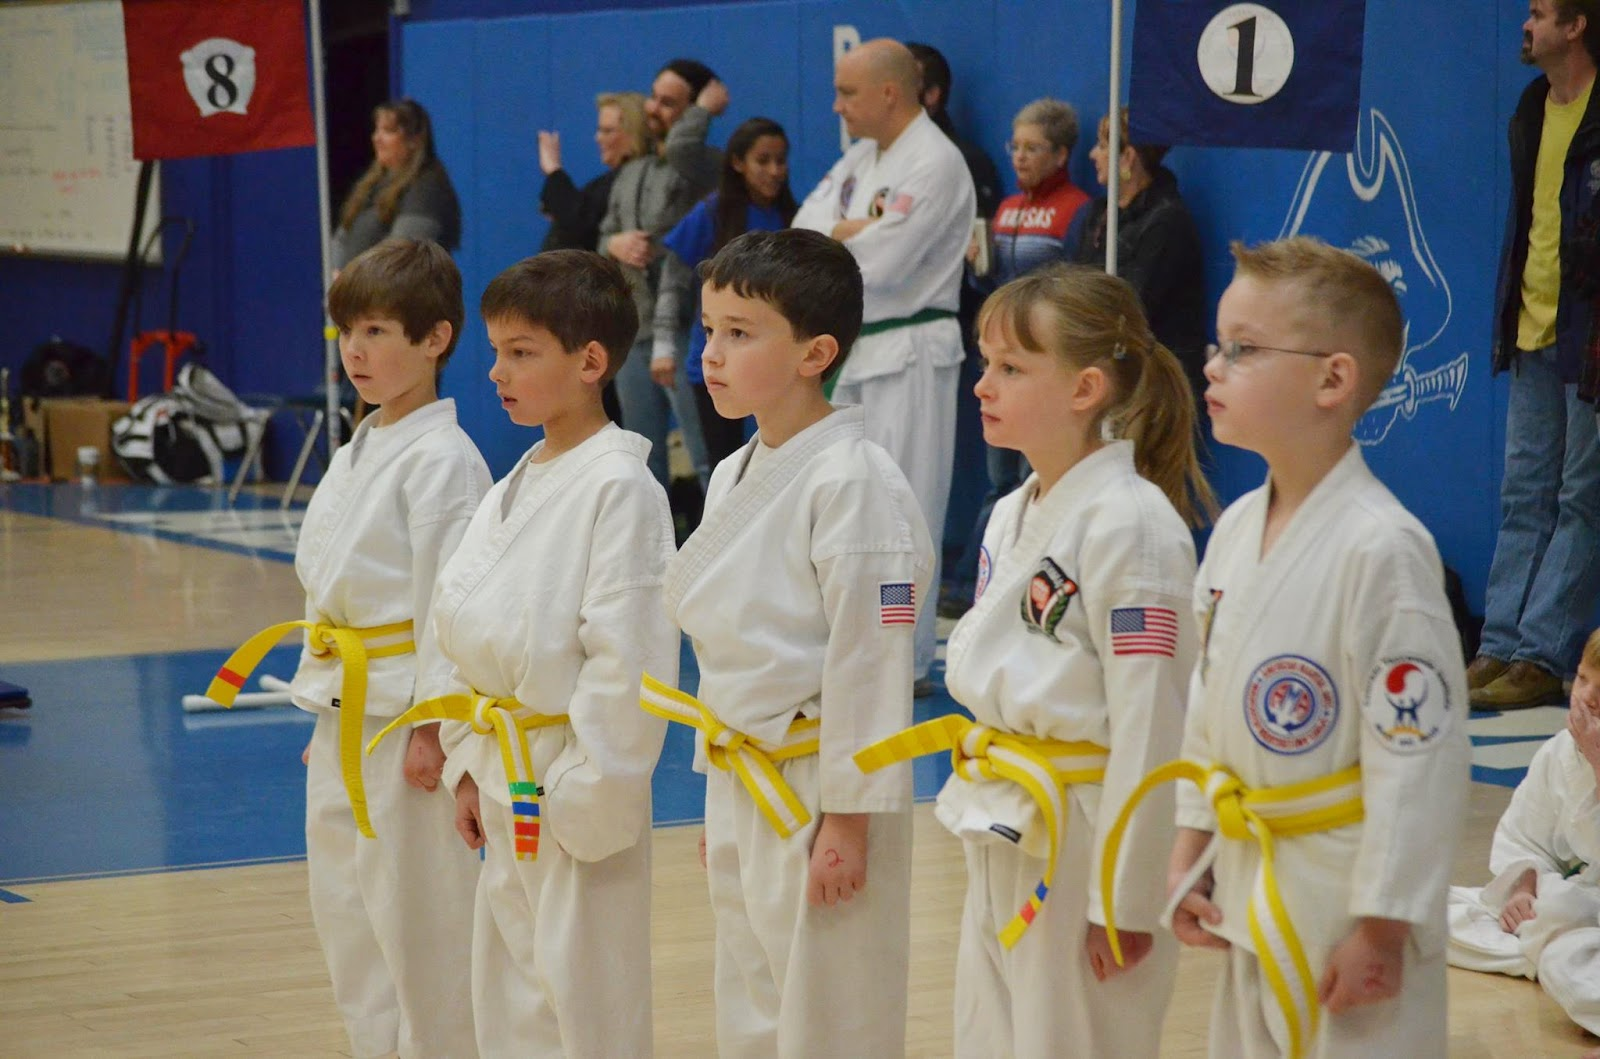 Martial arts students ready to compete at a tournament